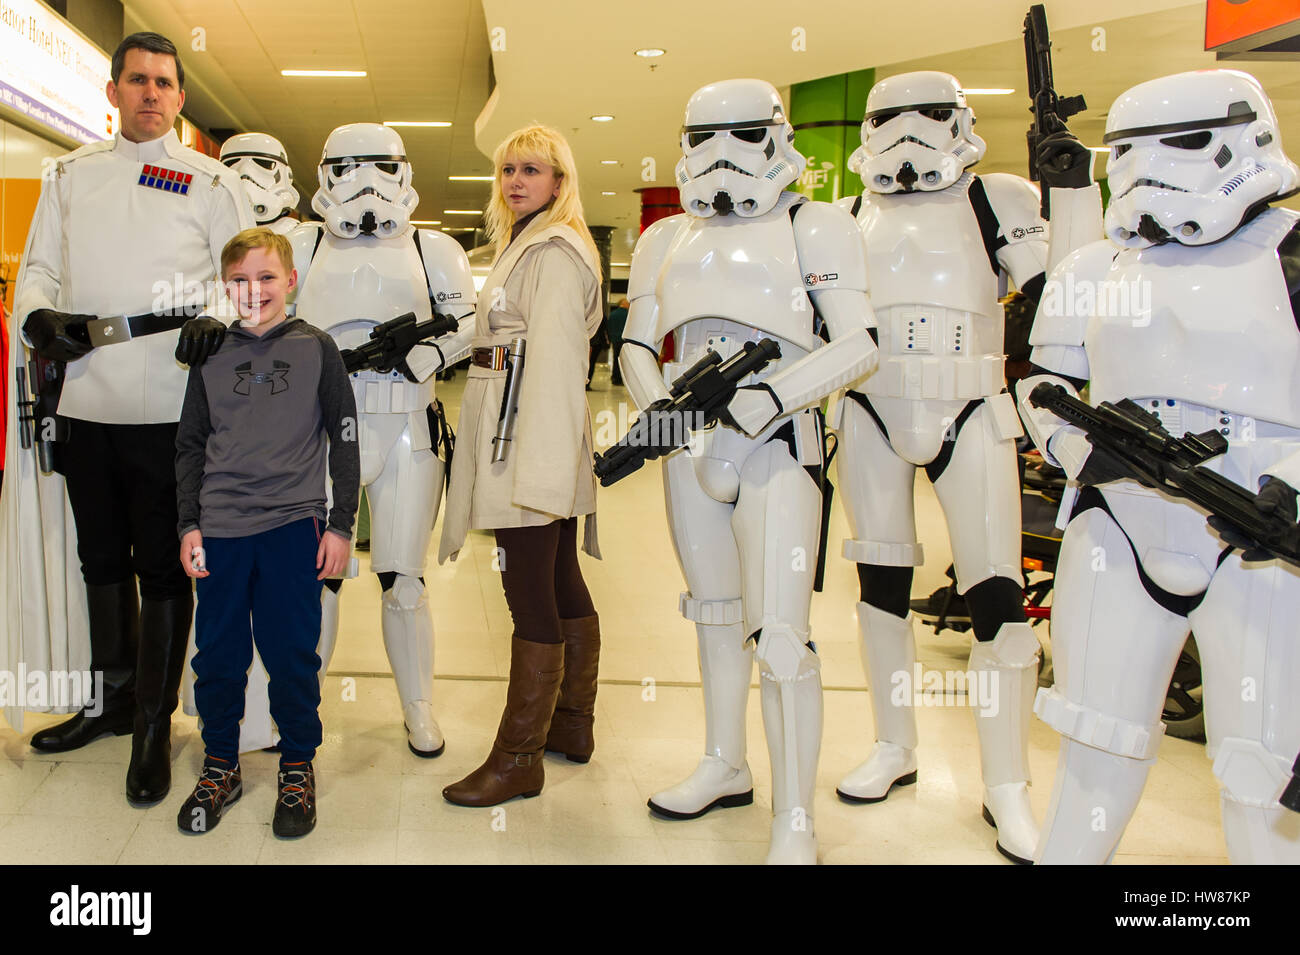 Birmingham NEC, UK. 18 Mar, 2017.  The sci-fi convention, Comic Con, takes place on the 18th and 19th March at the - Stock Image